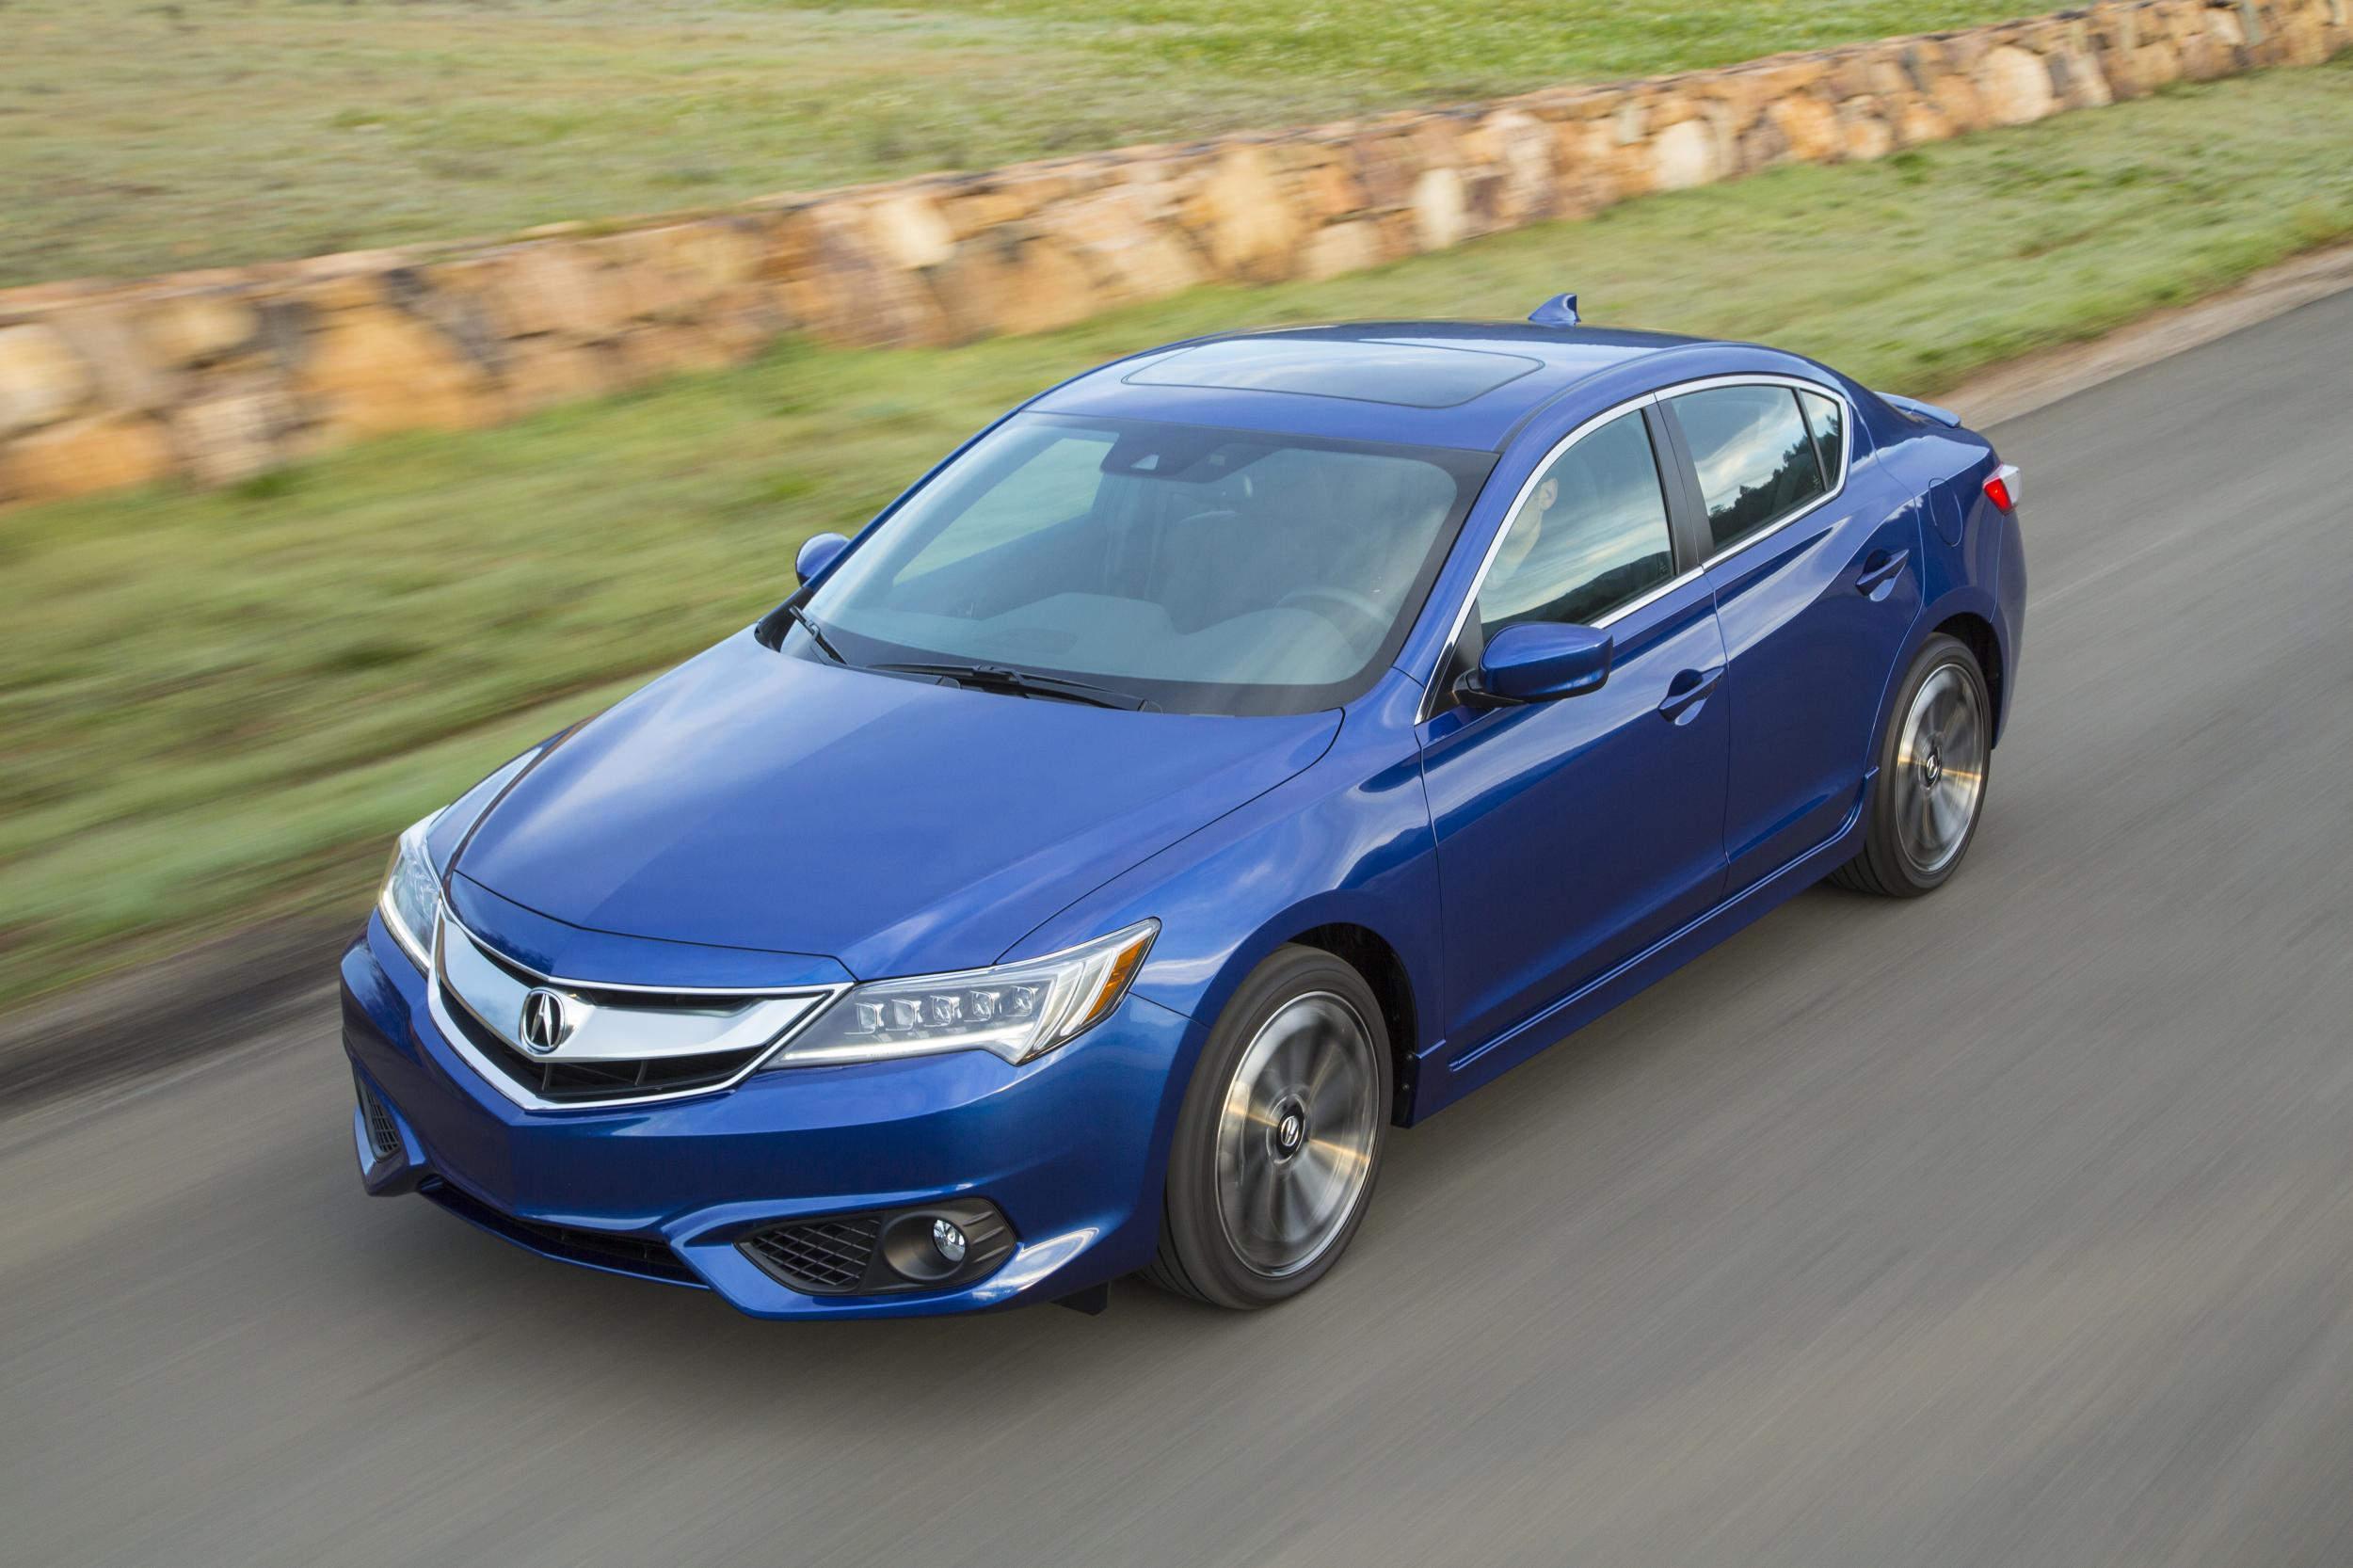 los sale in wonderful personal for kiplinger angeles montclair nj of unique best earns s acura dch tlx